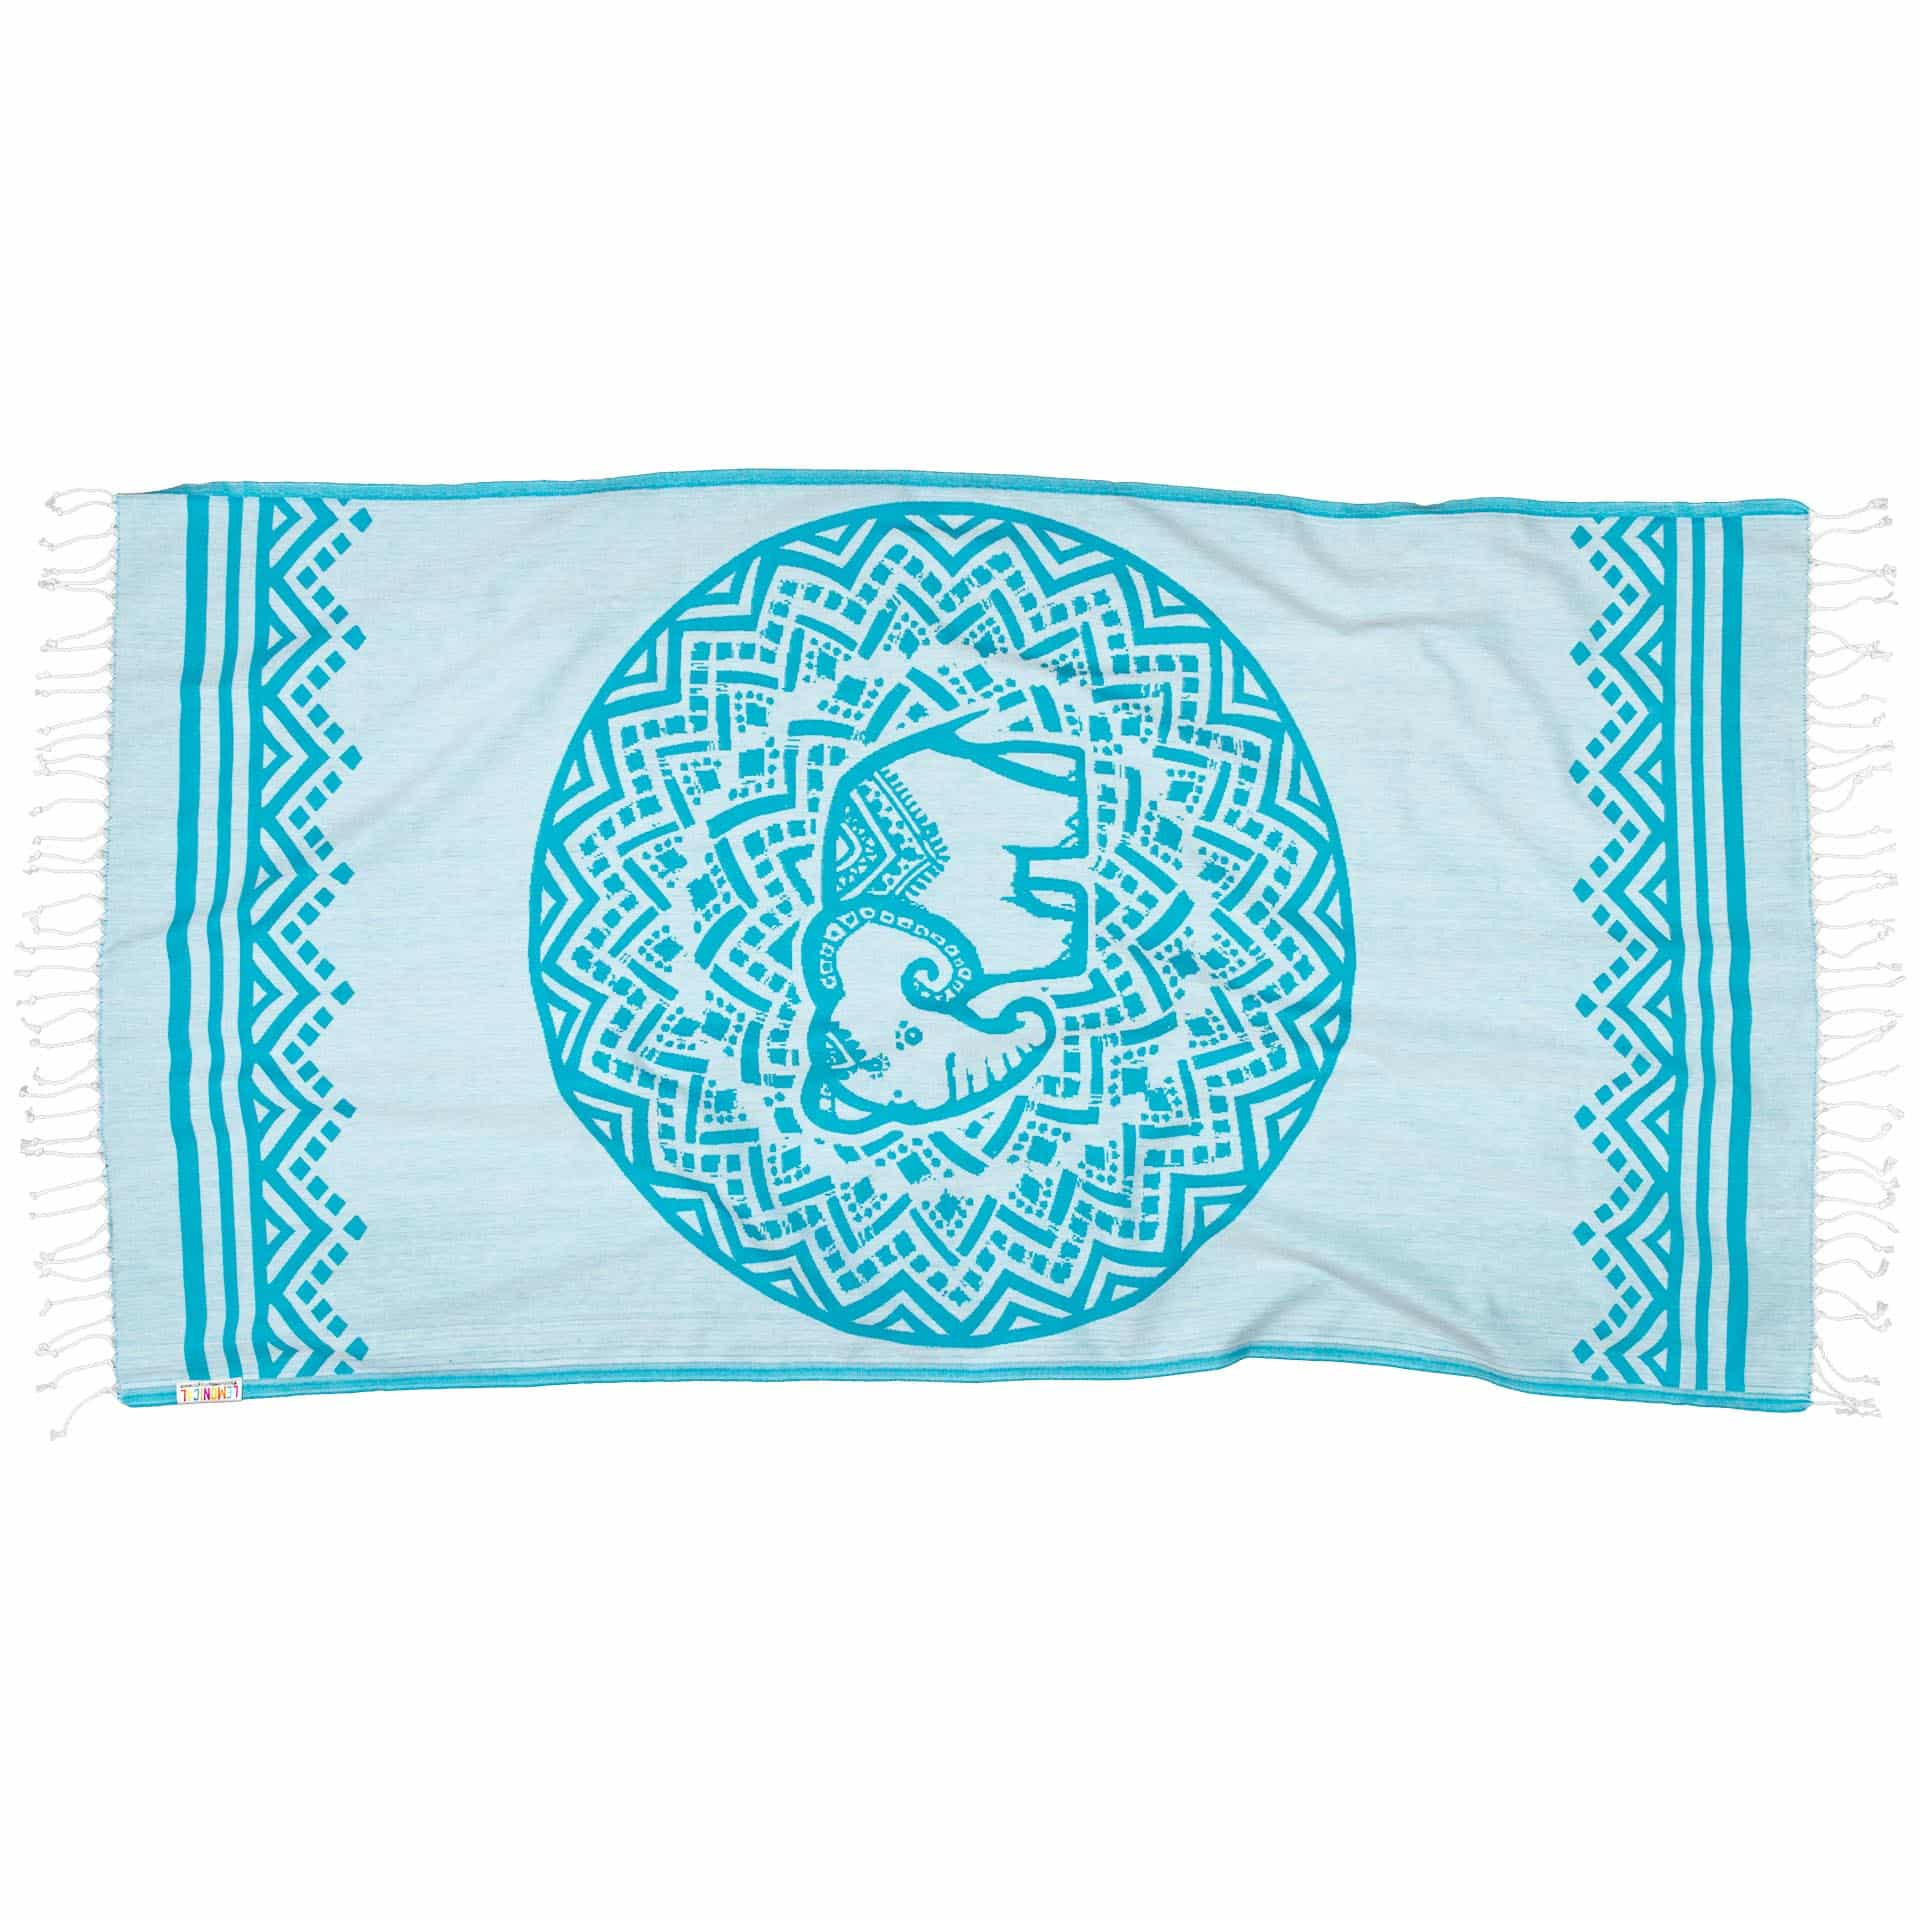 BLUE-ELEPHANT-Towel-Lemonical-2